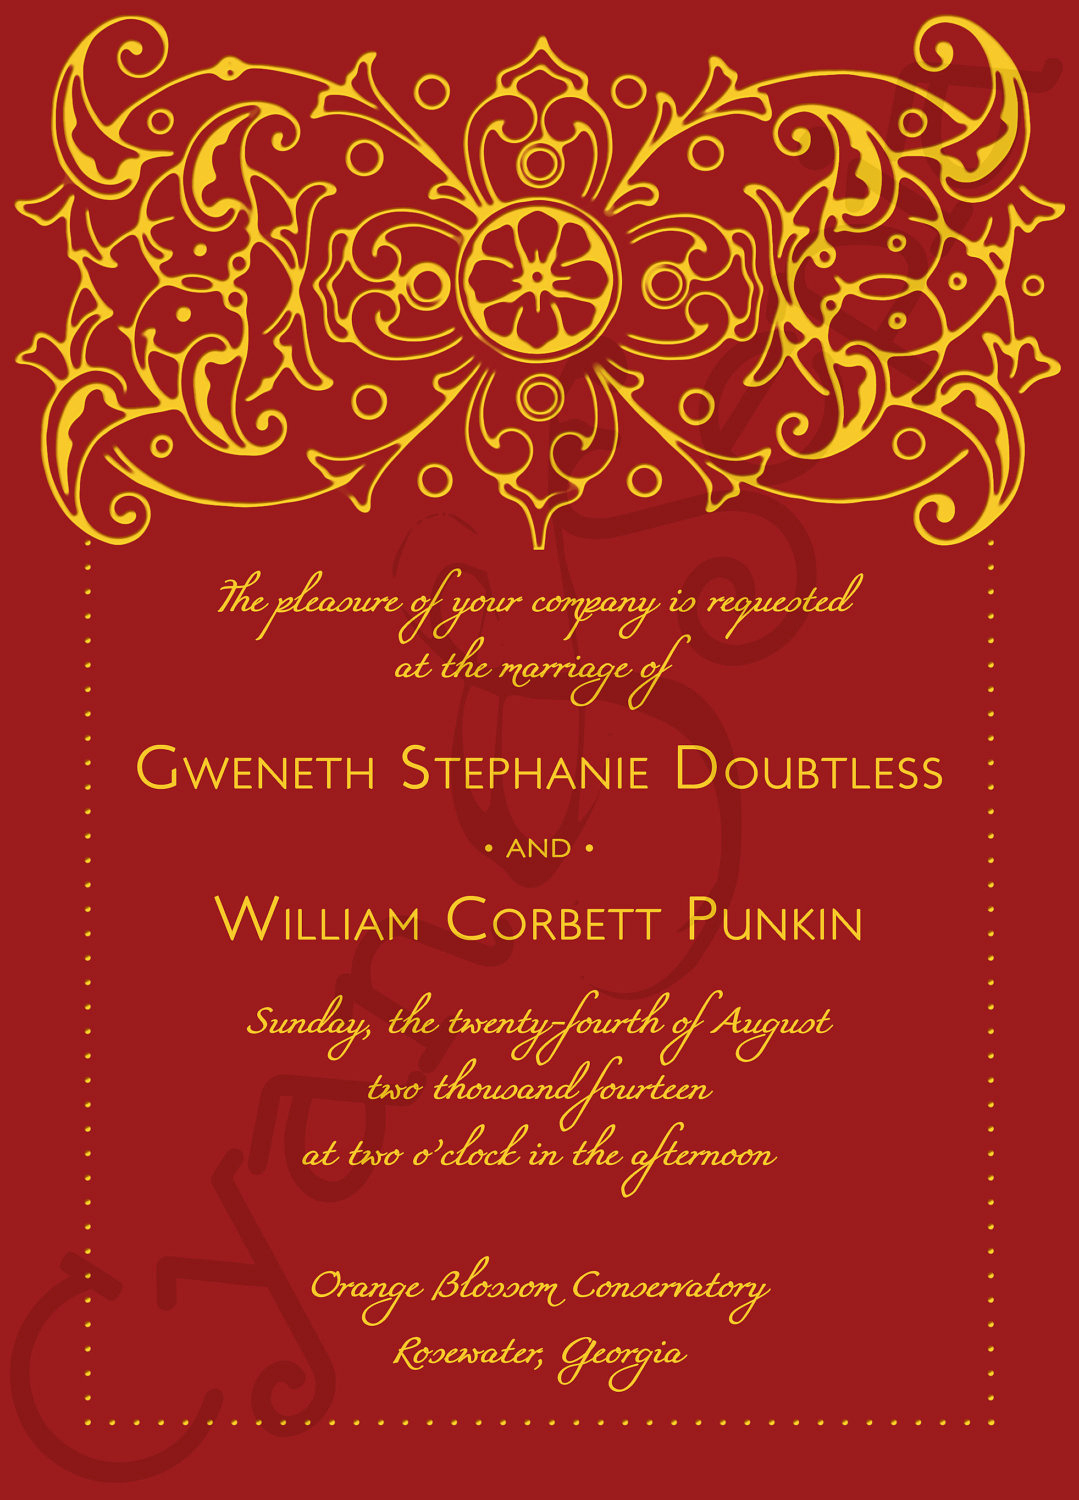 Indian Wedding Invitation Templates New Indian Wedding Invitation Ecards